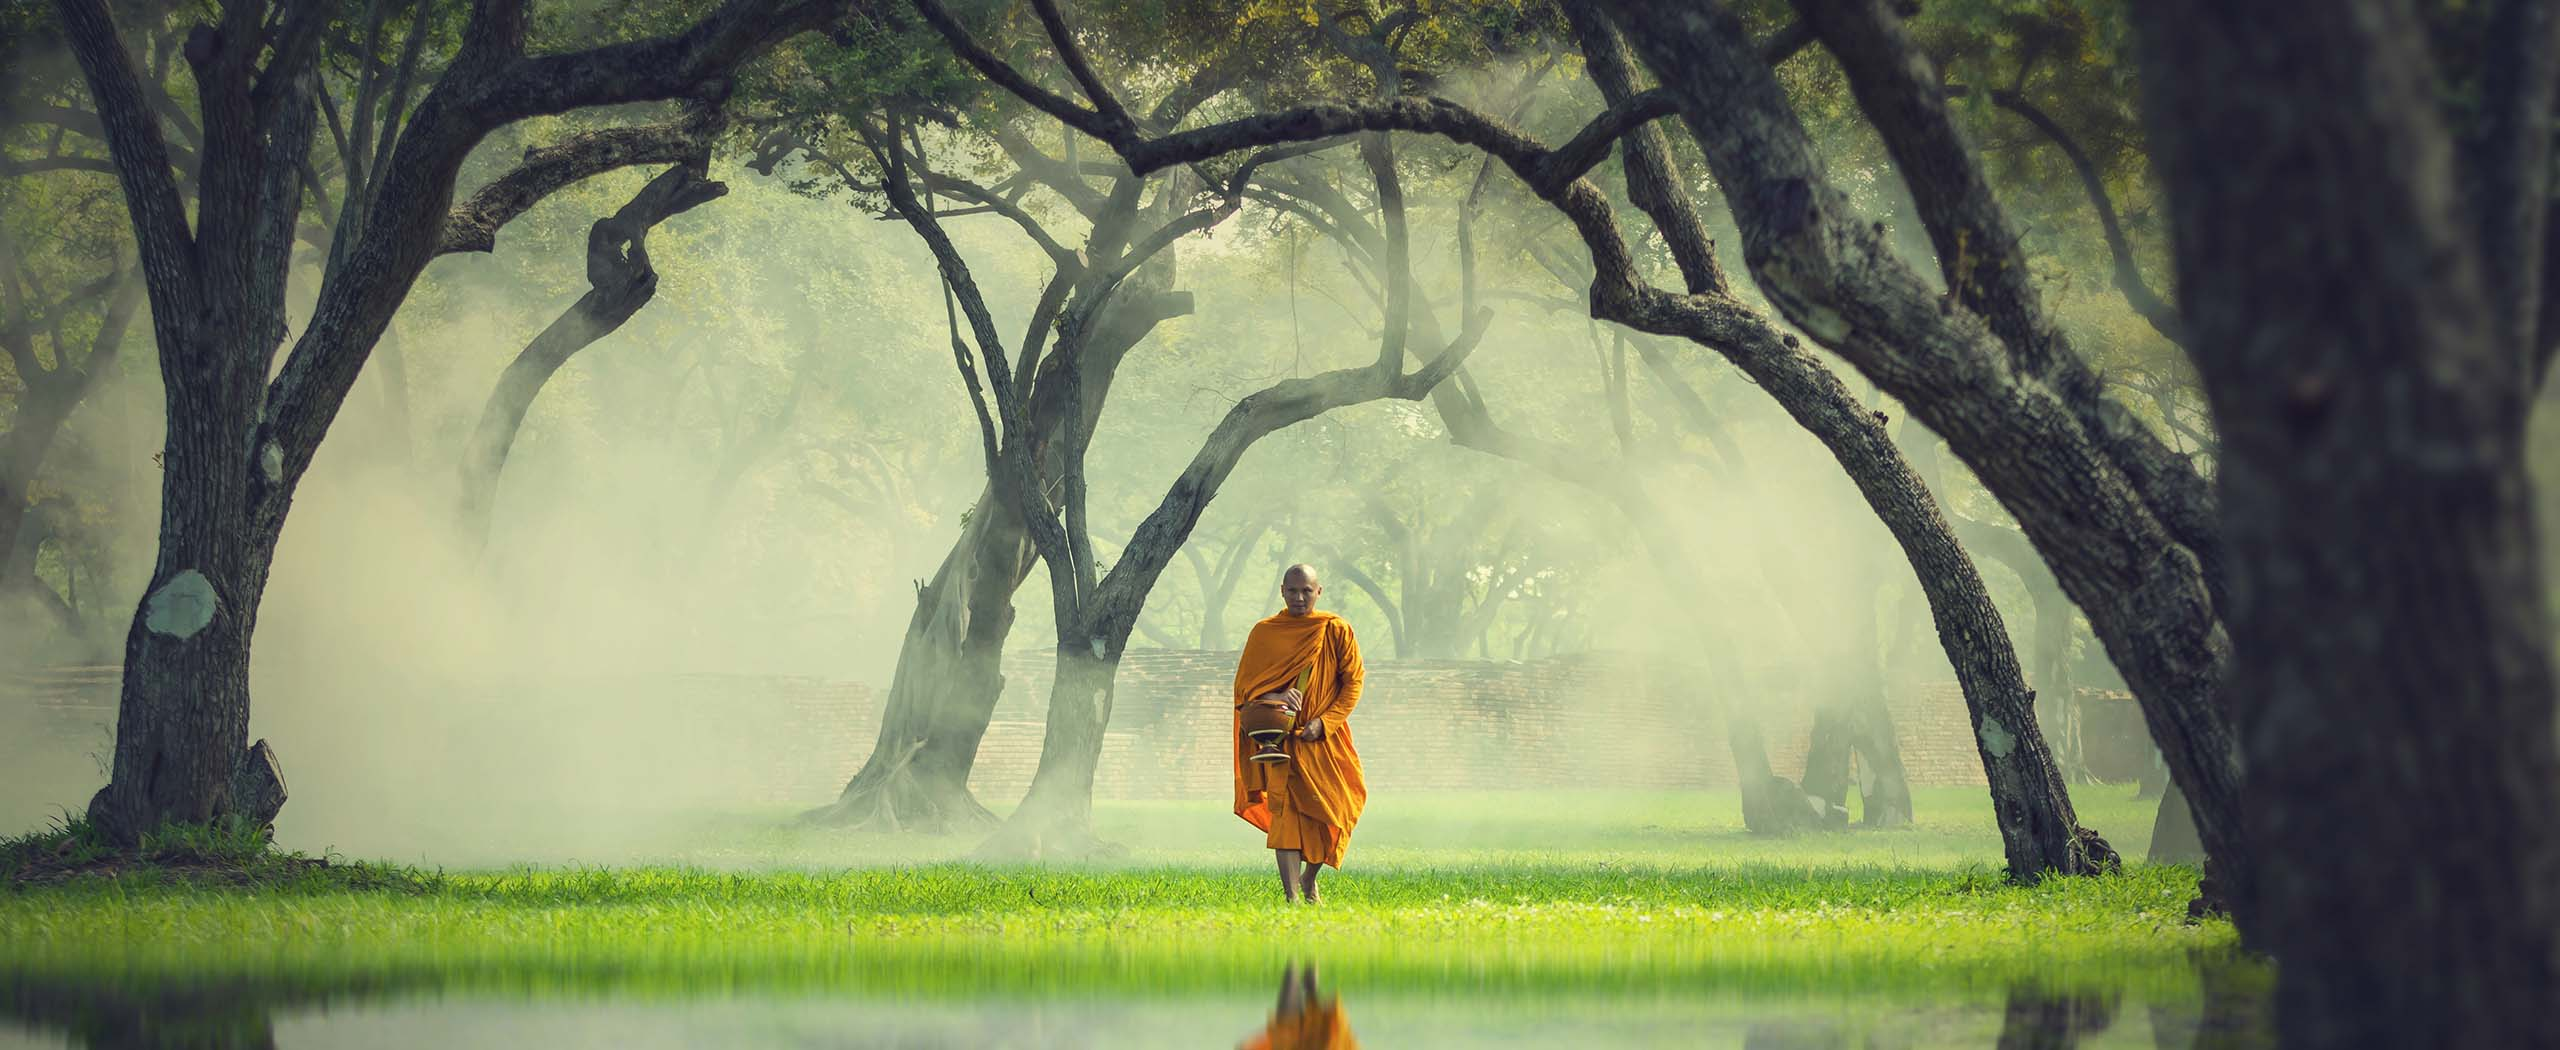 Monk walking towards the lake